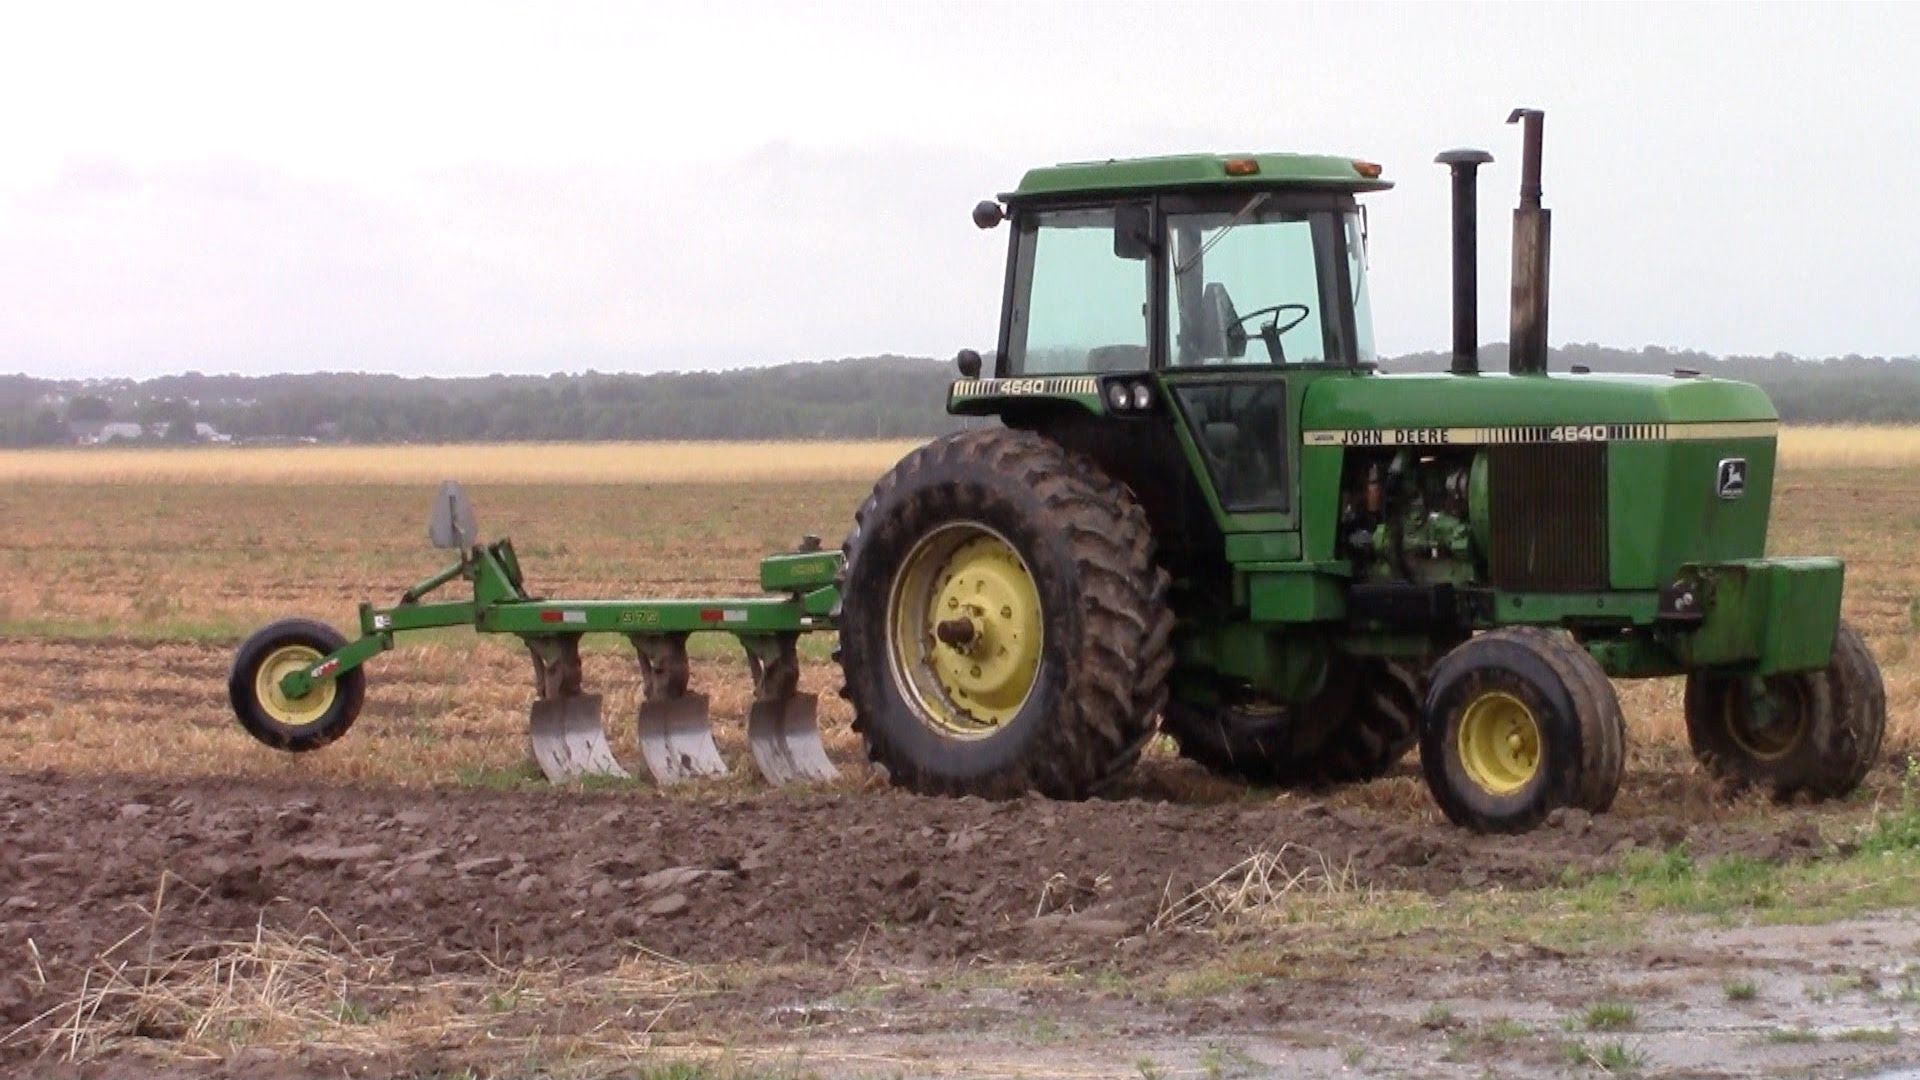 Trusting Our Farms To The Peconic Land Trust and